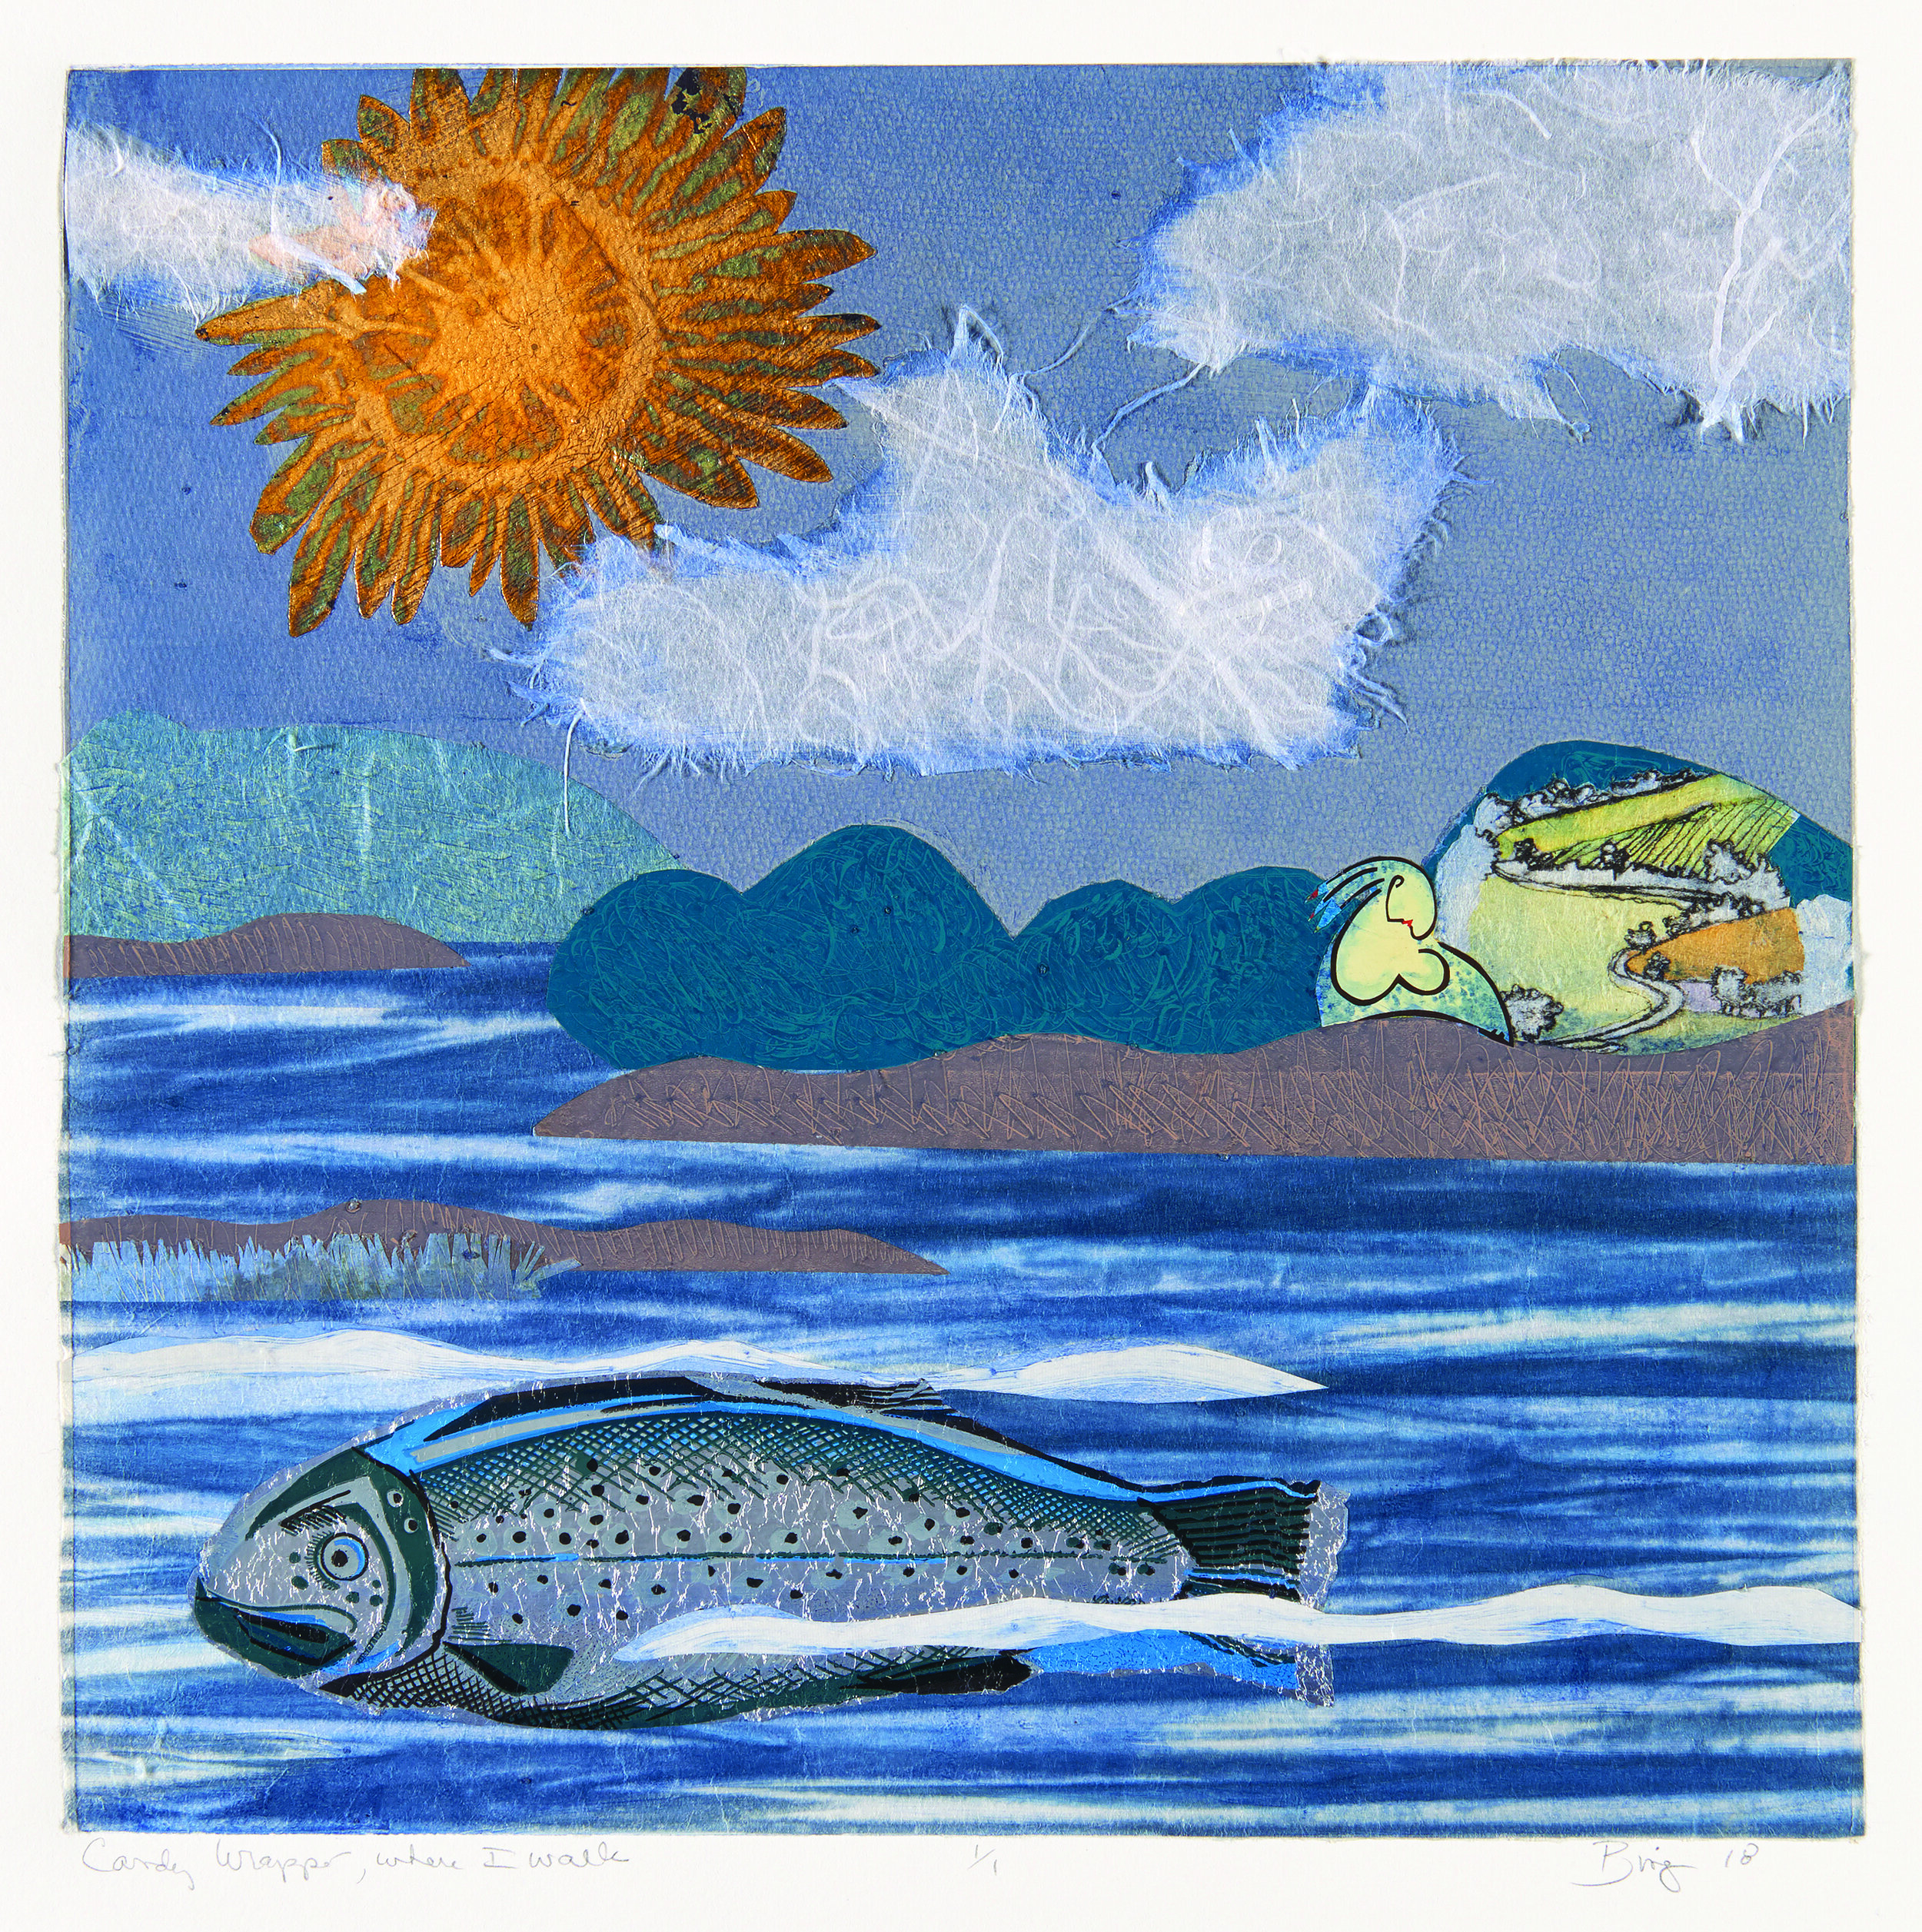 Monotype print of a landscape with fish, sun, clouds on blue ocean and sky